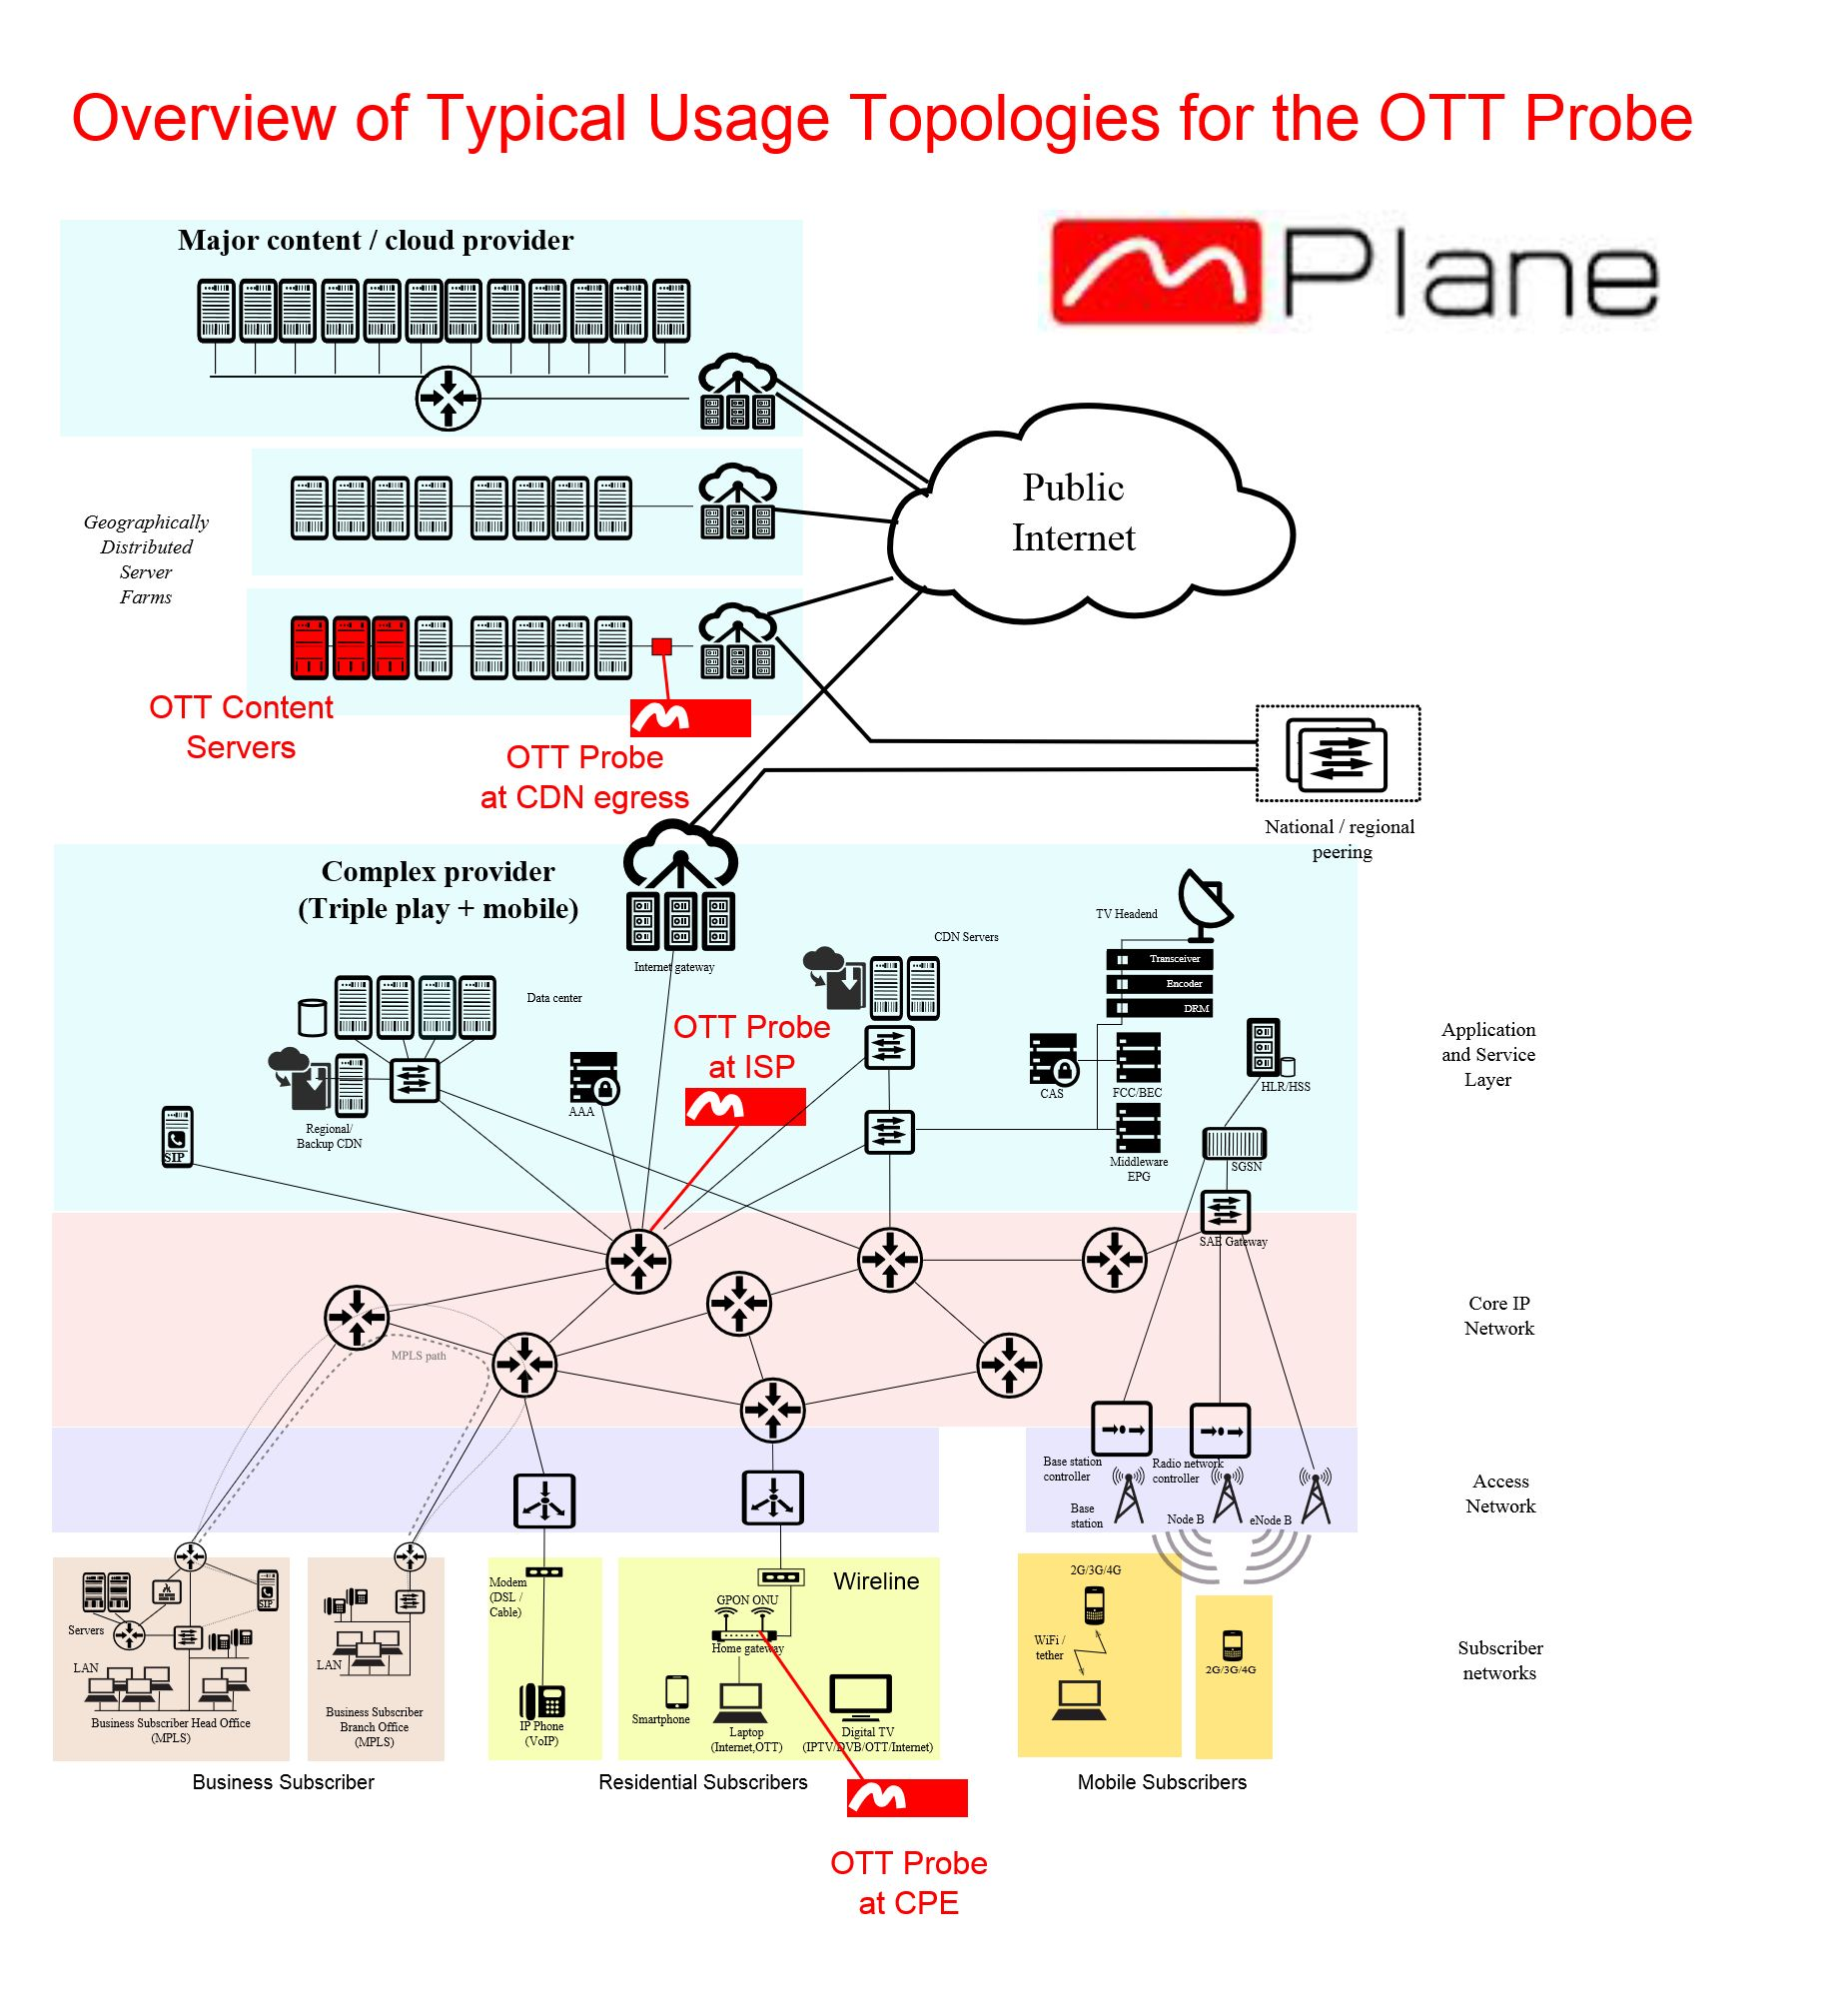 Overview of typical usage topologies of the OTT probe